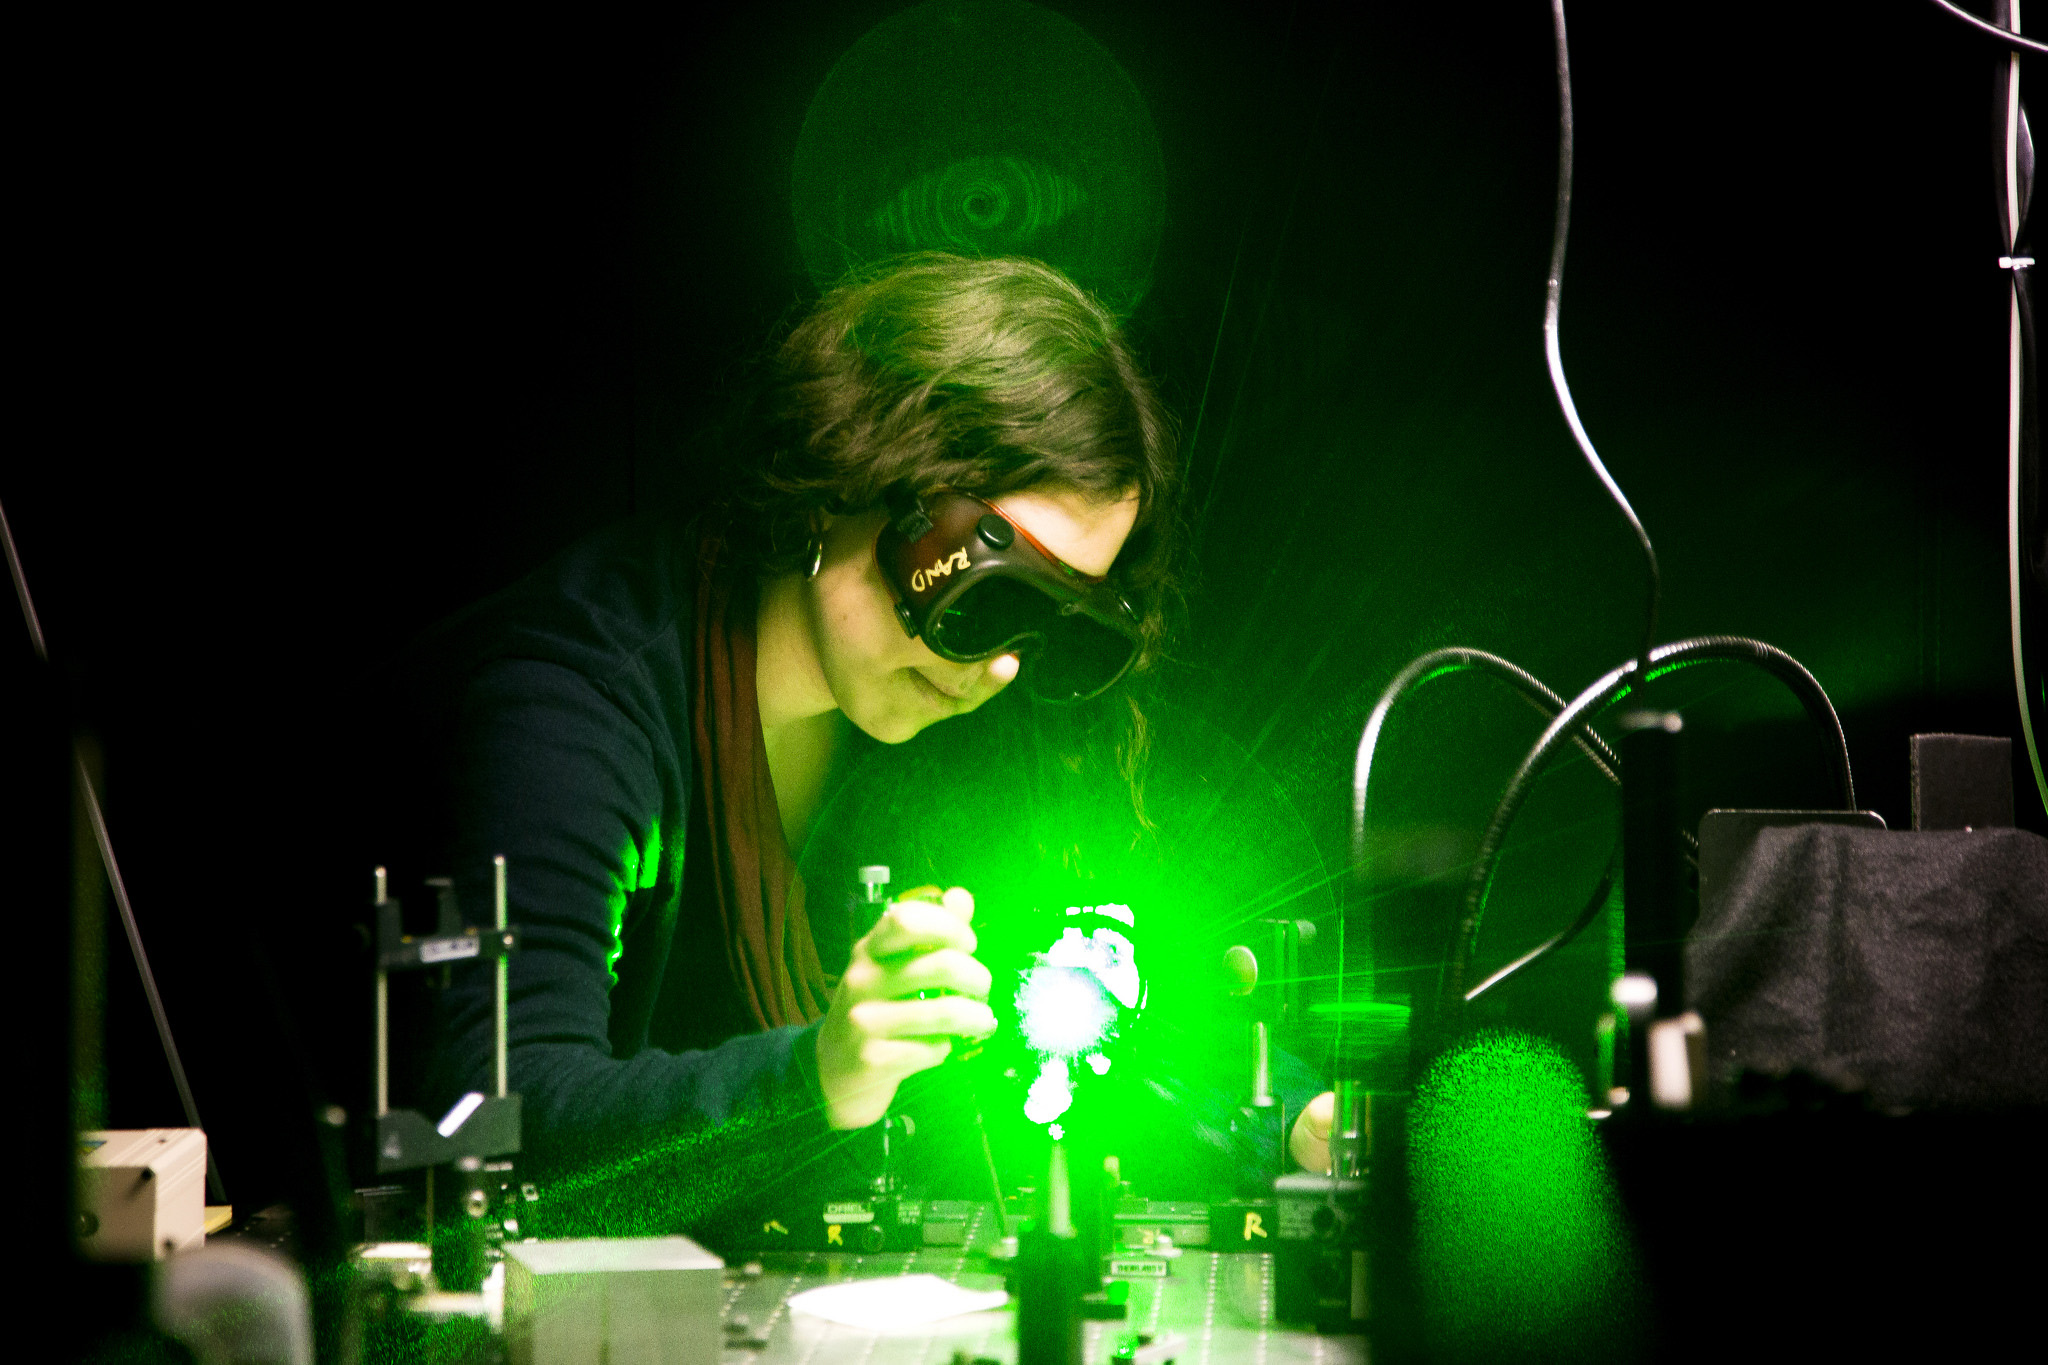 A photograph of a EE student working with lasers.